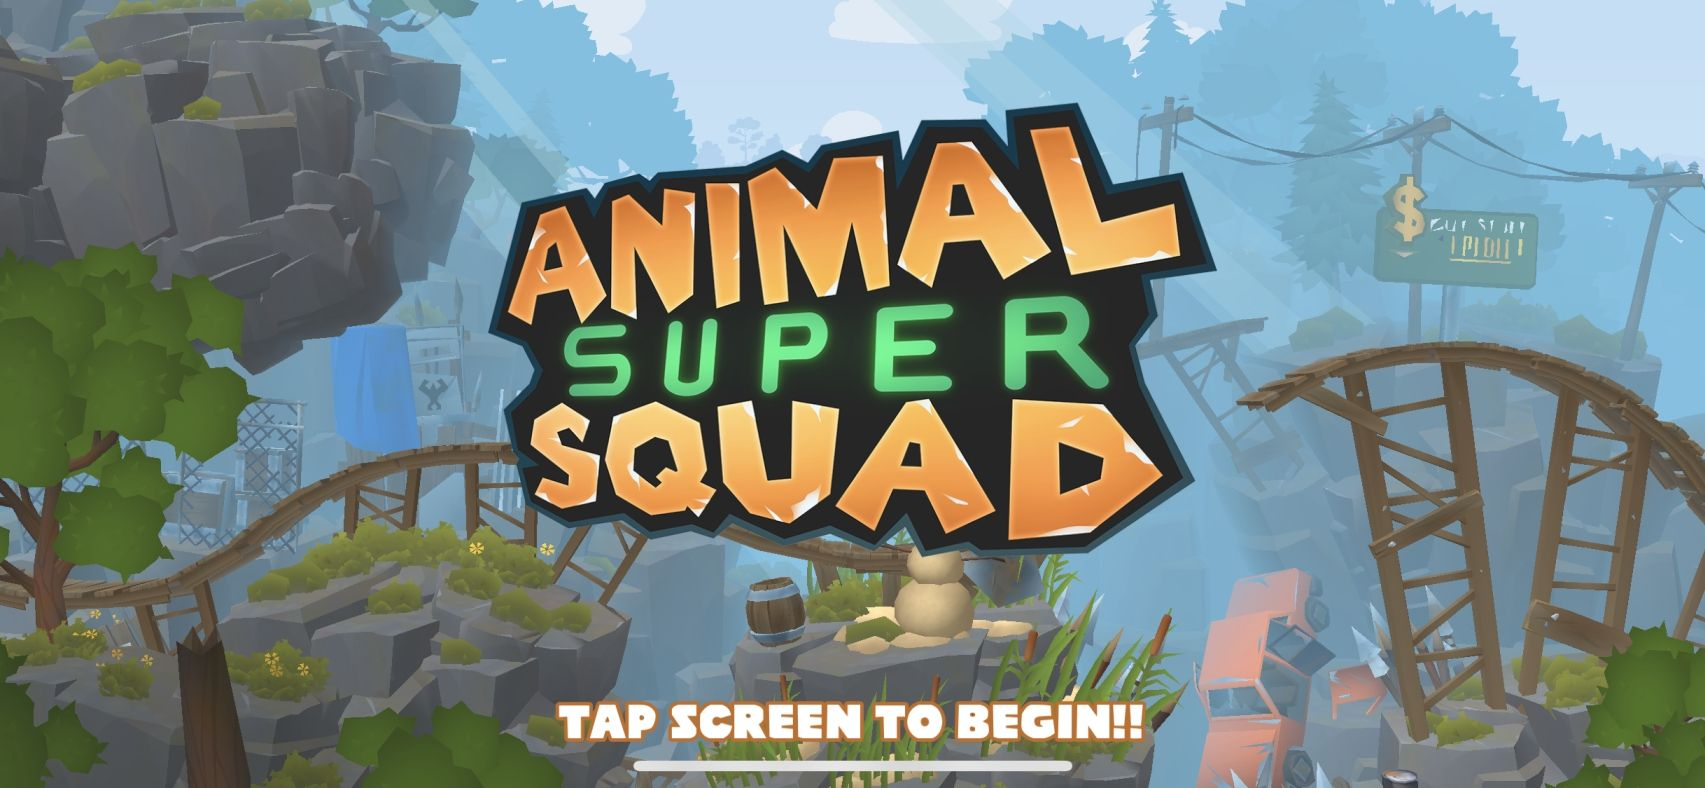 Animal Super Squad (copie d'écran 1 sur iPhone / iPad)